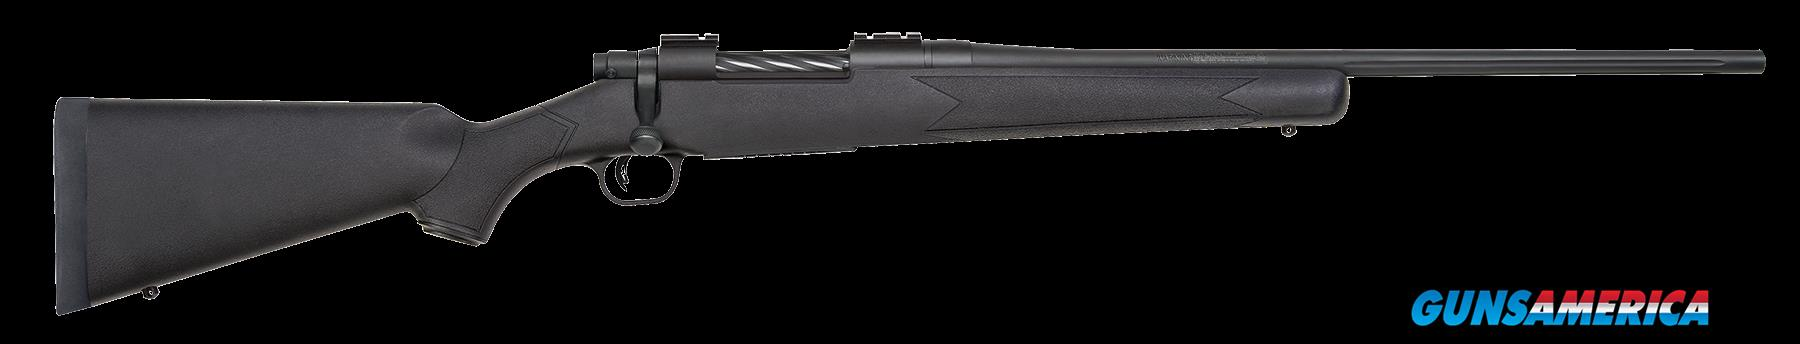 "Mossberg 27884 Patriot Bolt 270 Win 22"" 5+1 Synthetic Black Stk Blued  Guns > Rifles > MN Misc Rifles"